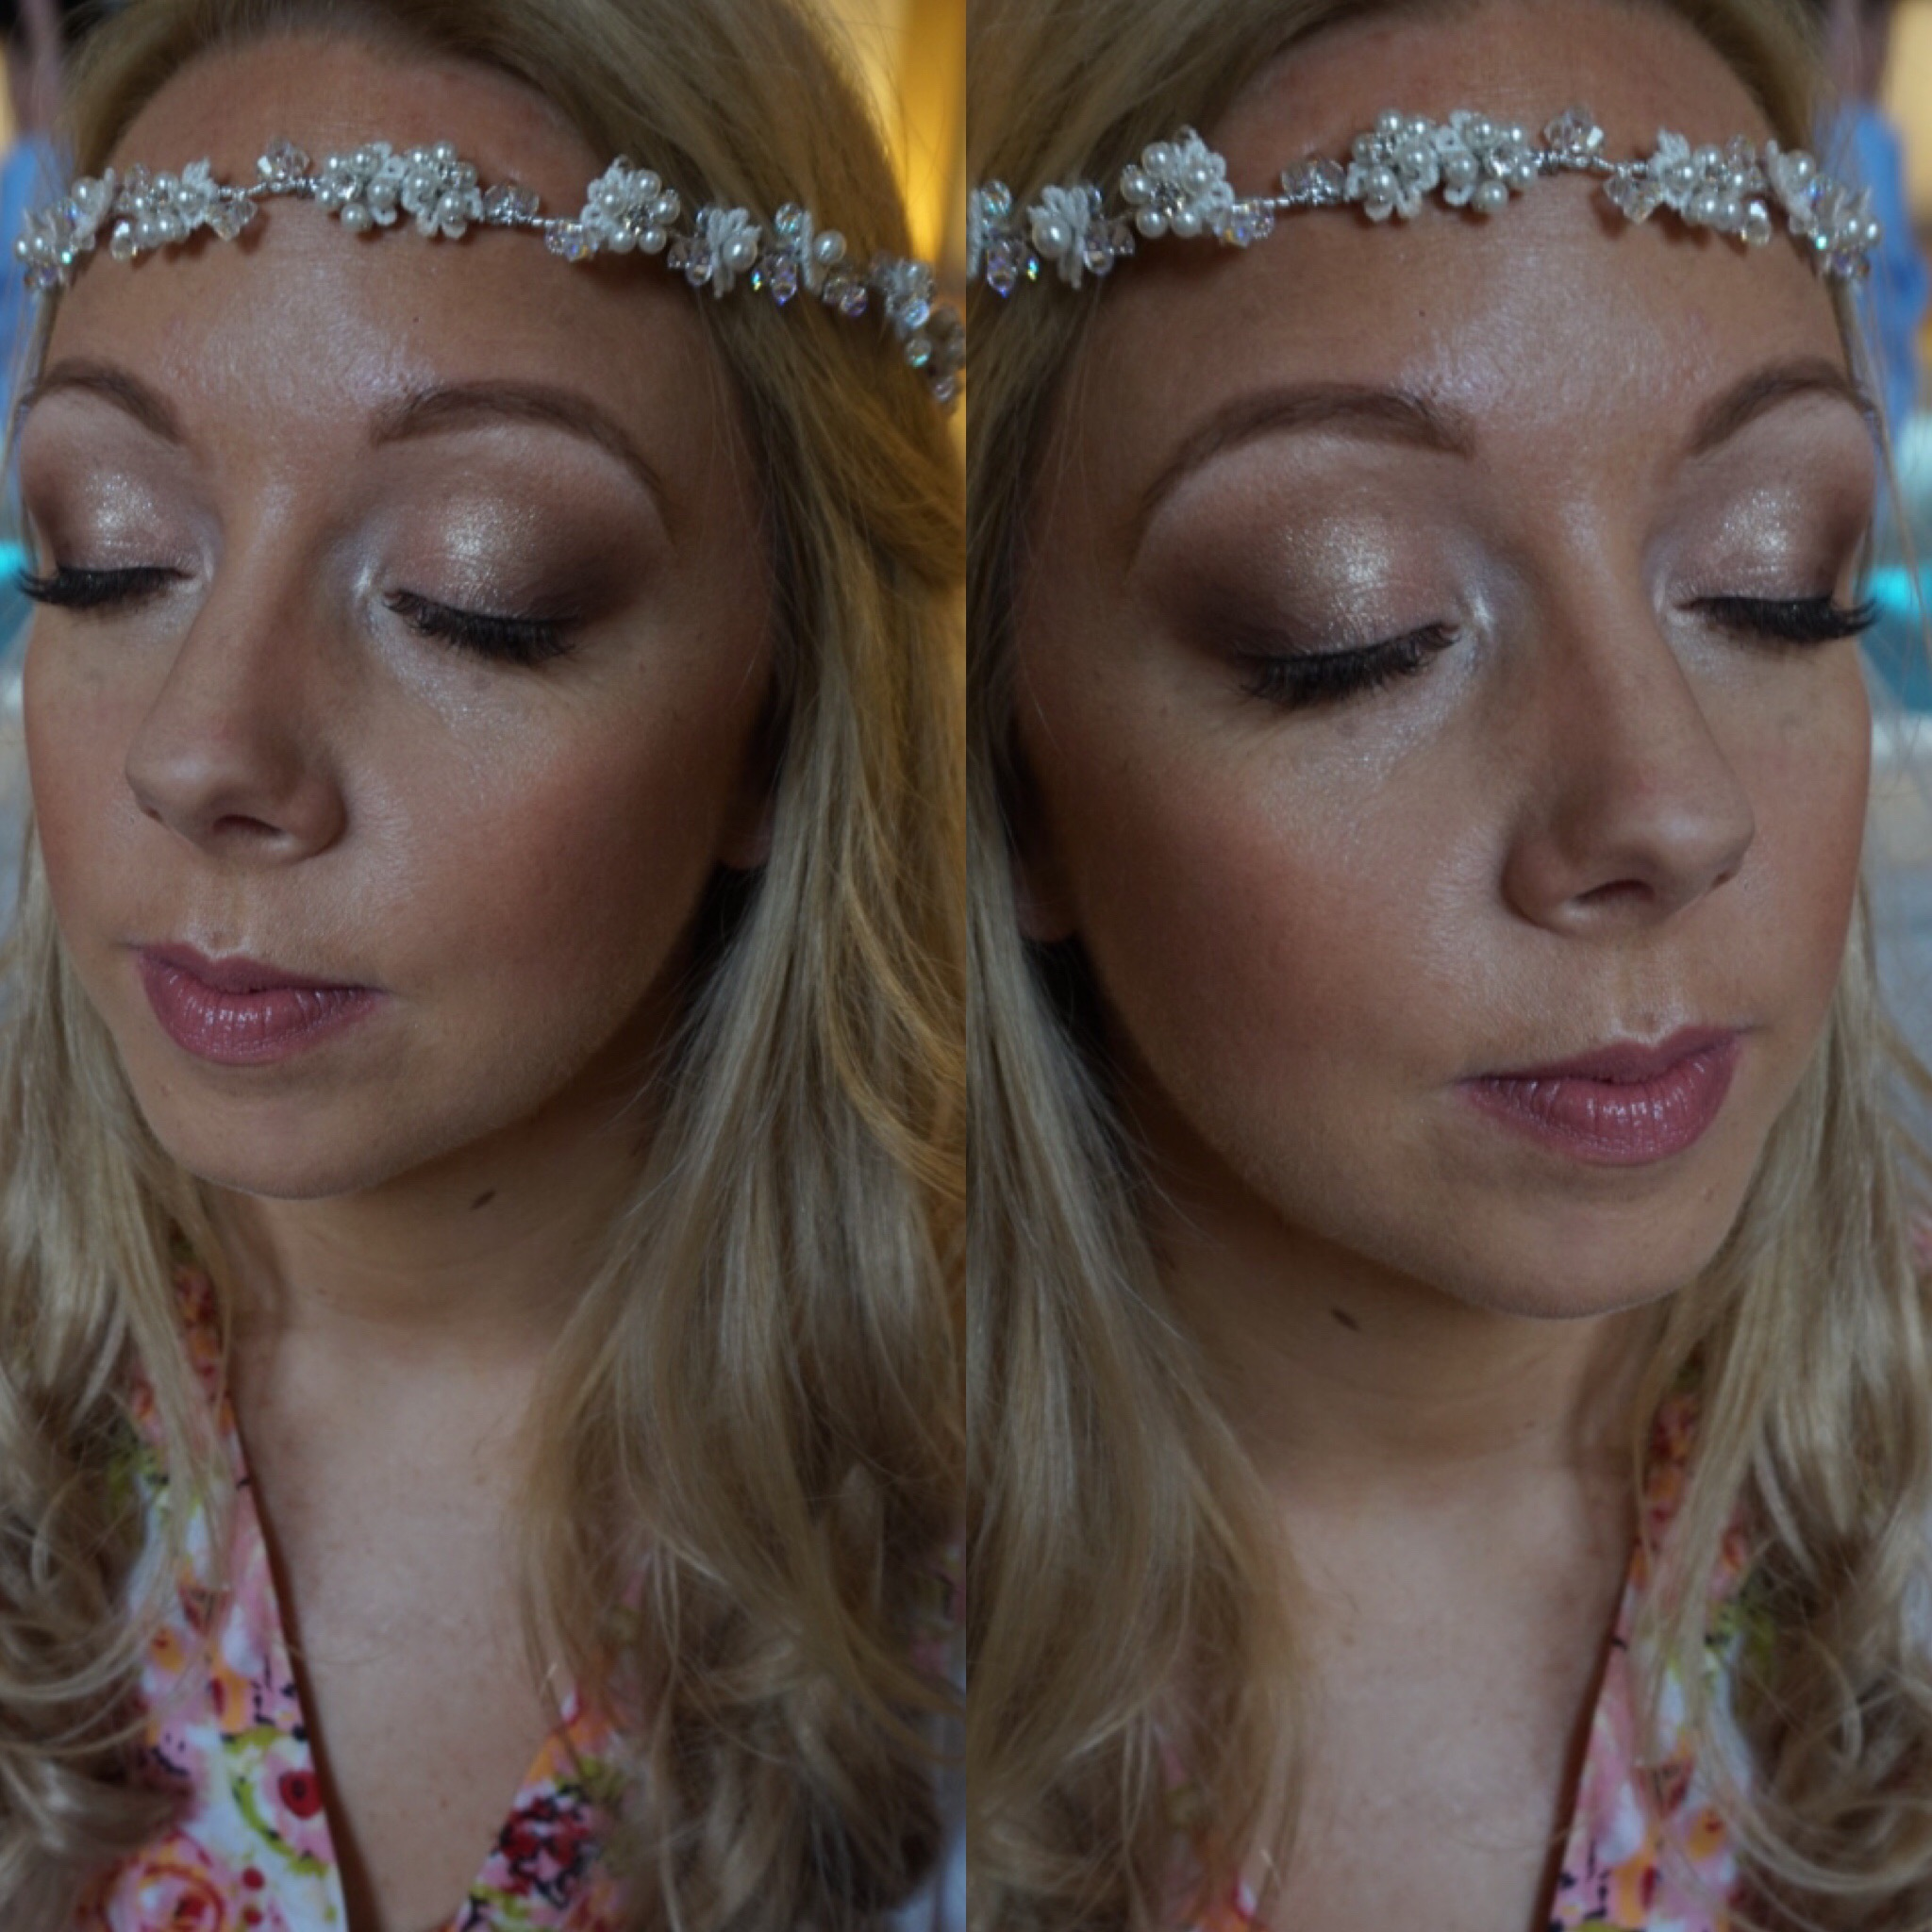 Wedding Makeup Hair Essex Bridal Beauty Packages Southend Snap